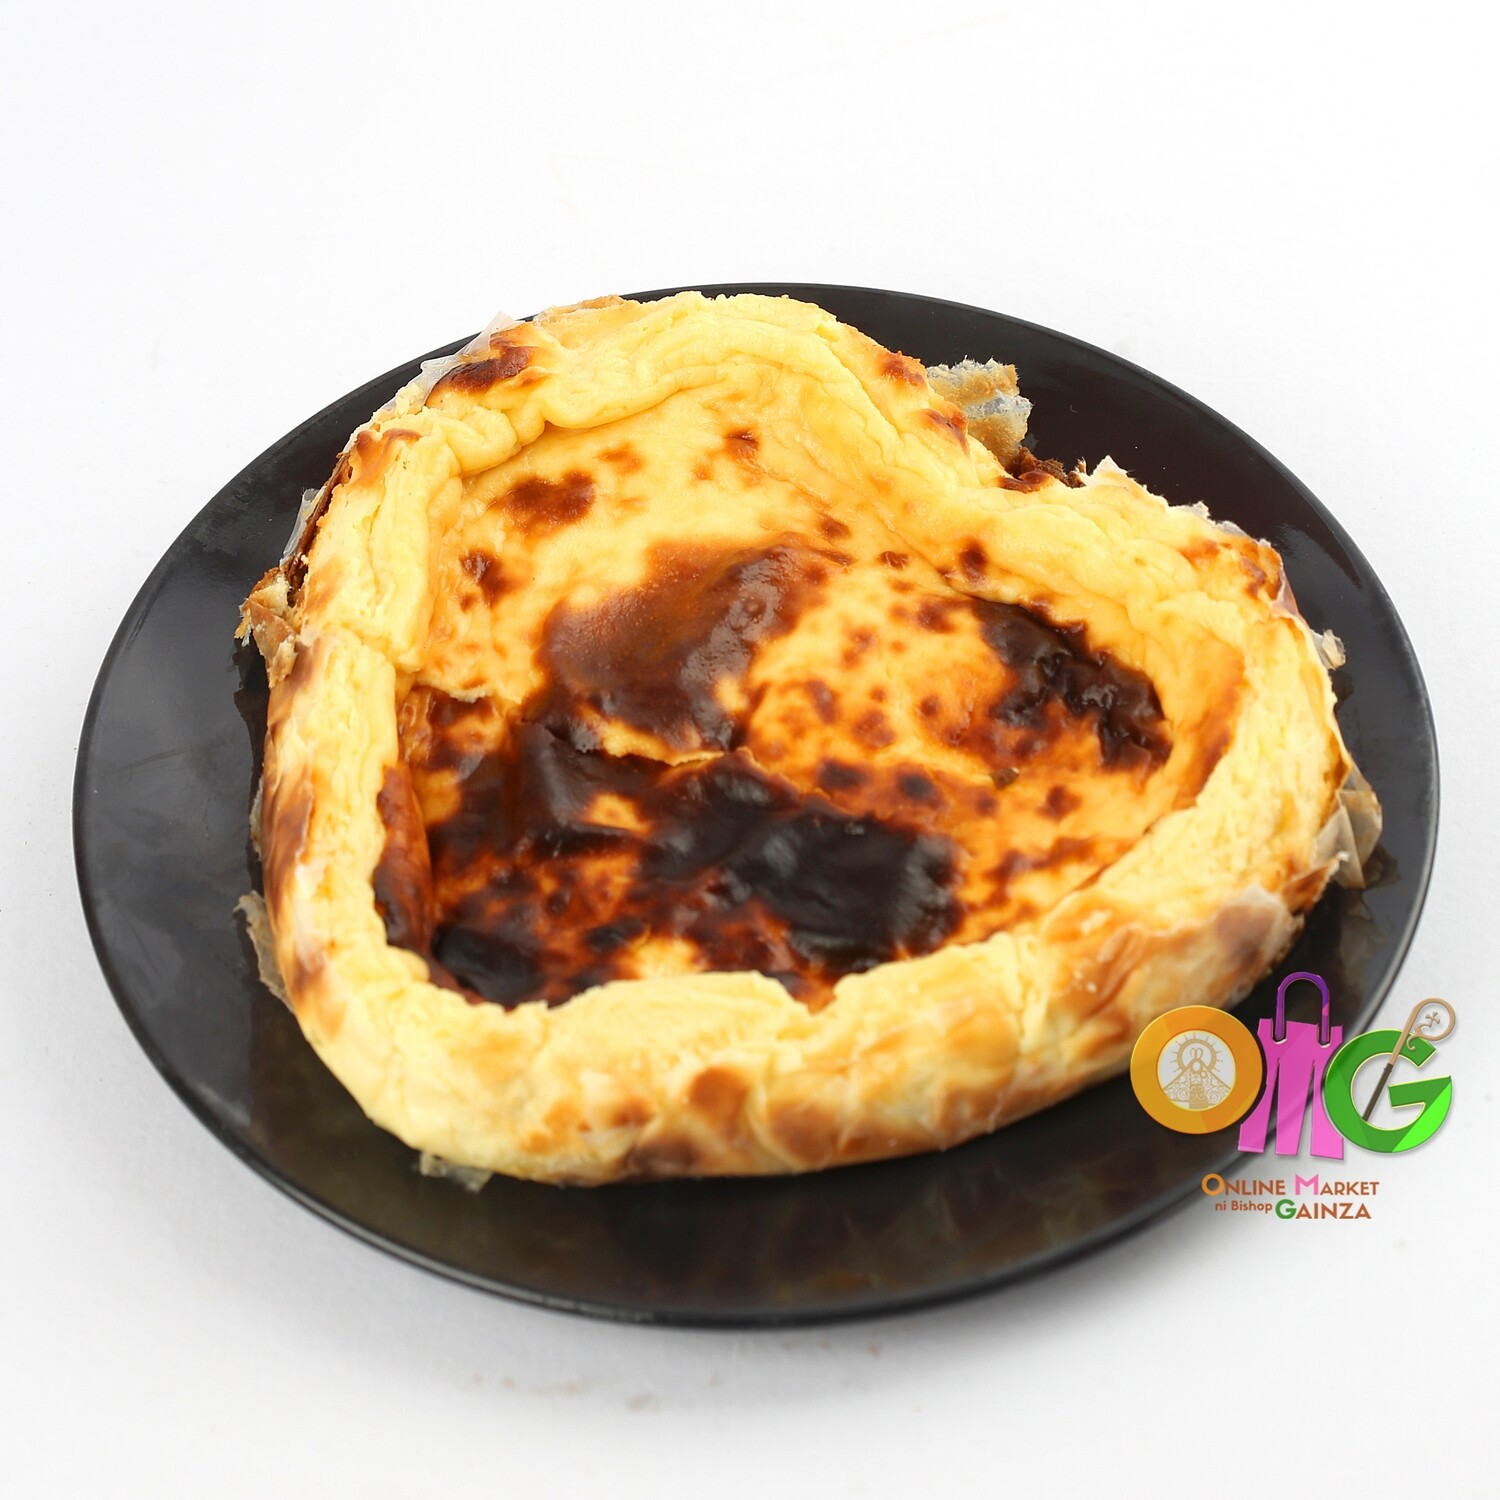 Carmelo's Baked Goodies - Basque Burnt Cheesecake